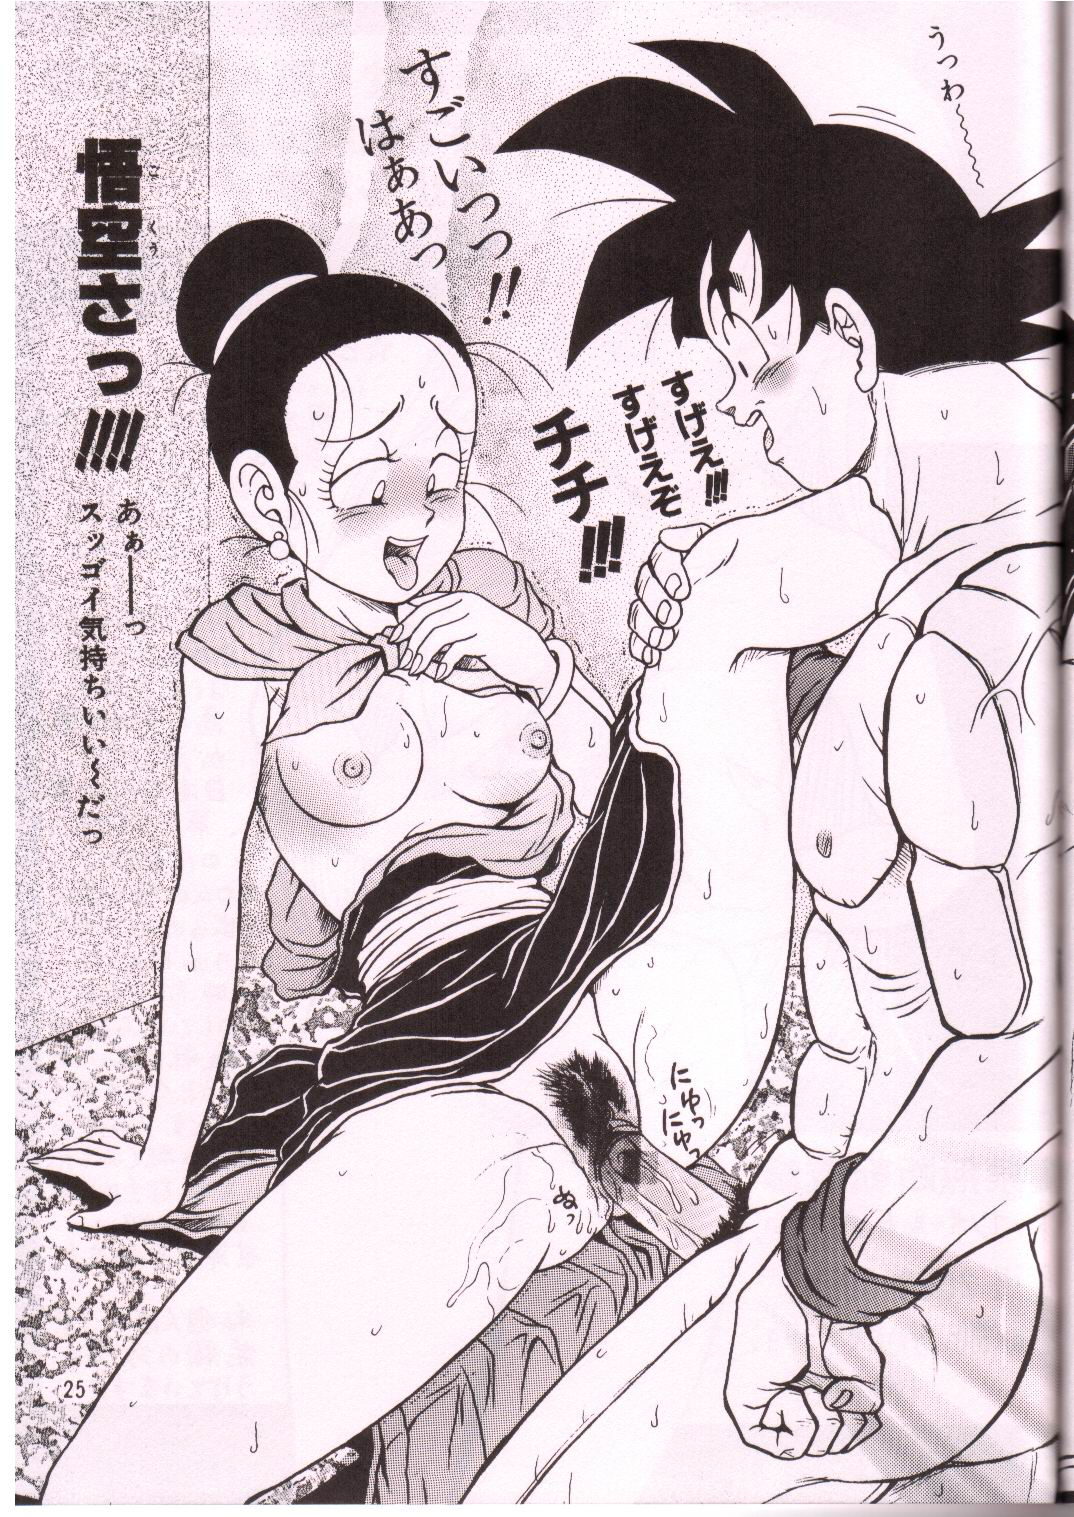 mad at goku gets fanfiction chichi If it exists there's a porn of it